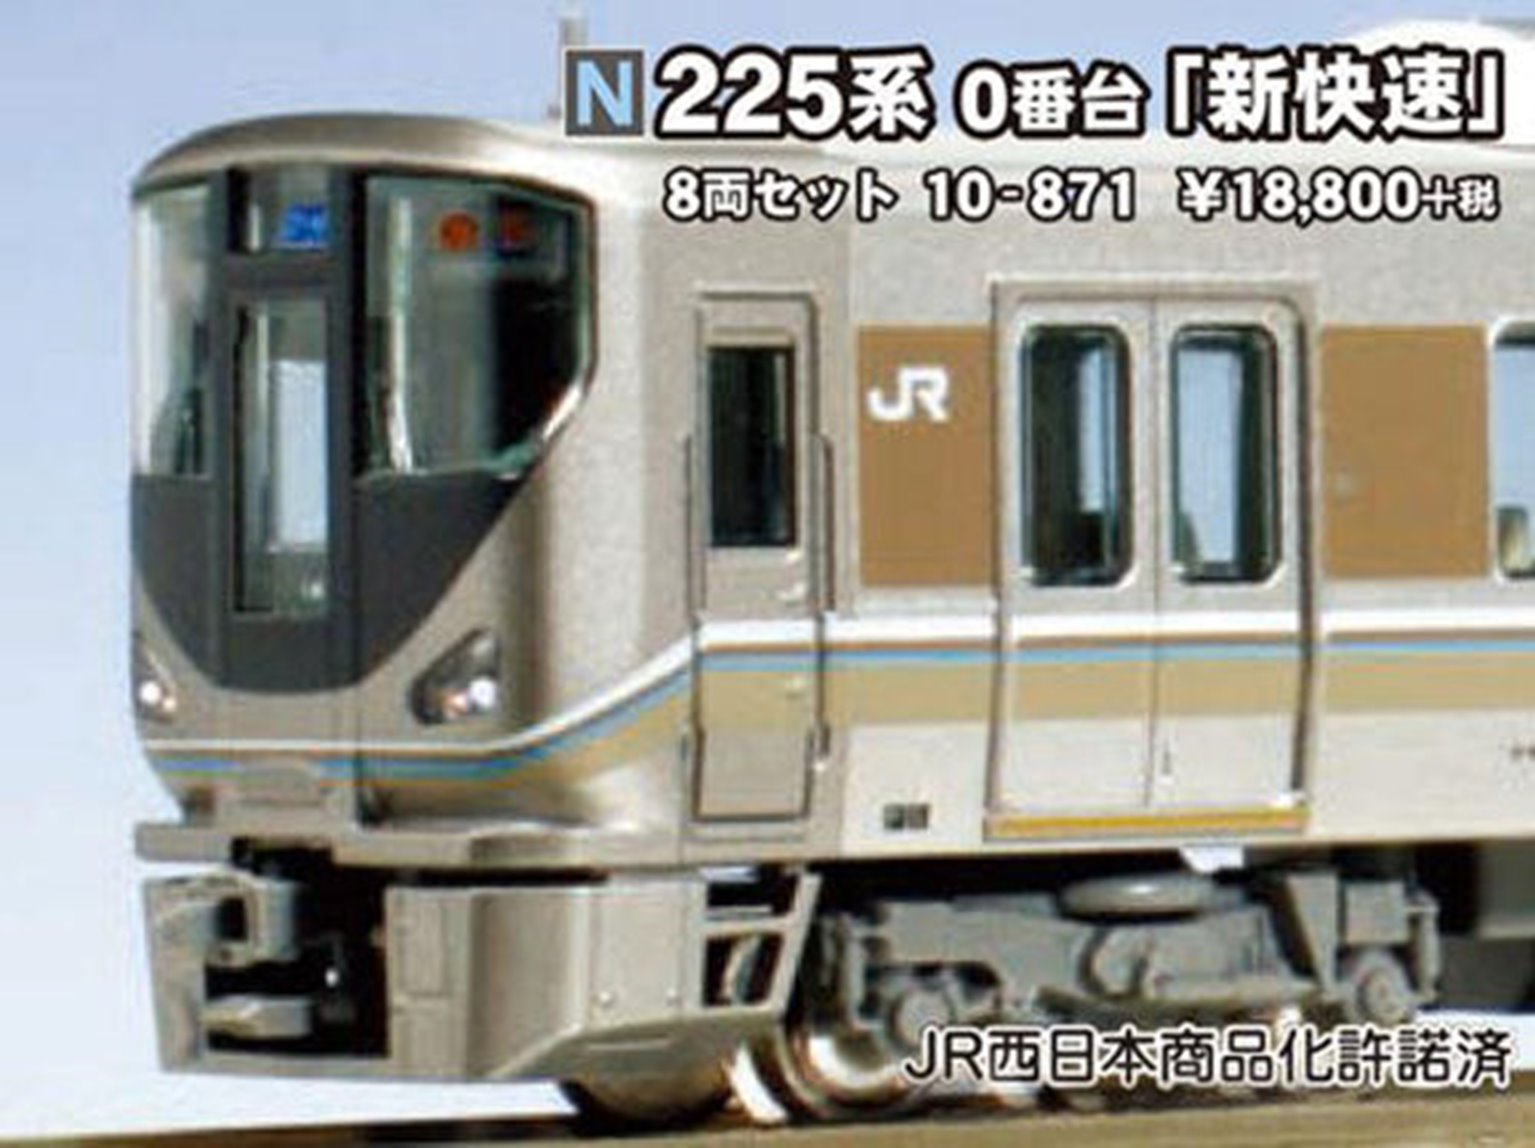 Kato 10-871 Series 225-0 'Shinkaisoku' 8 Car Set